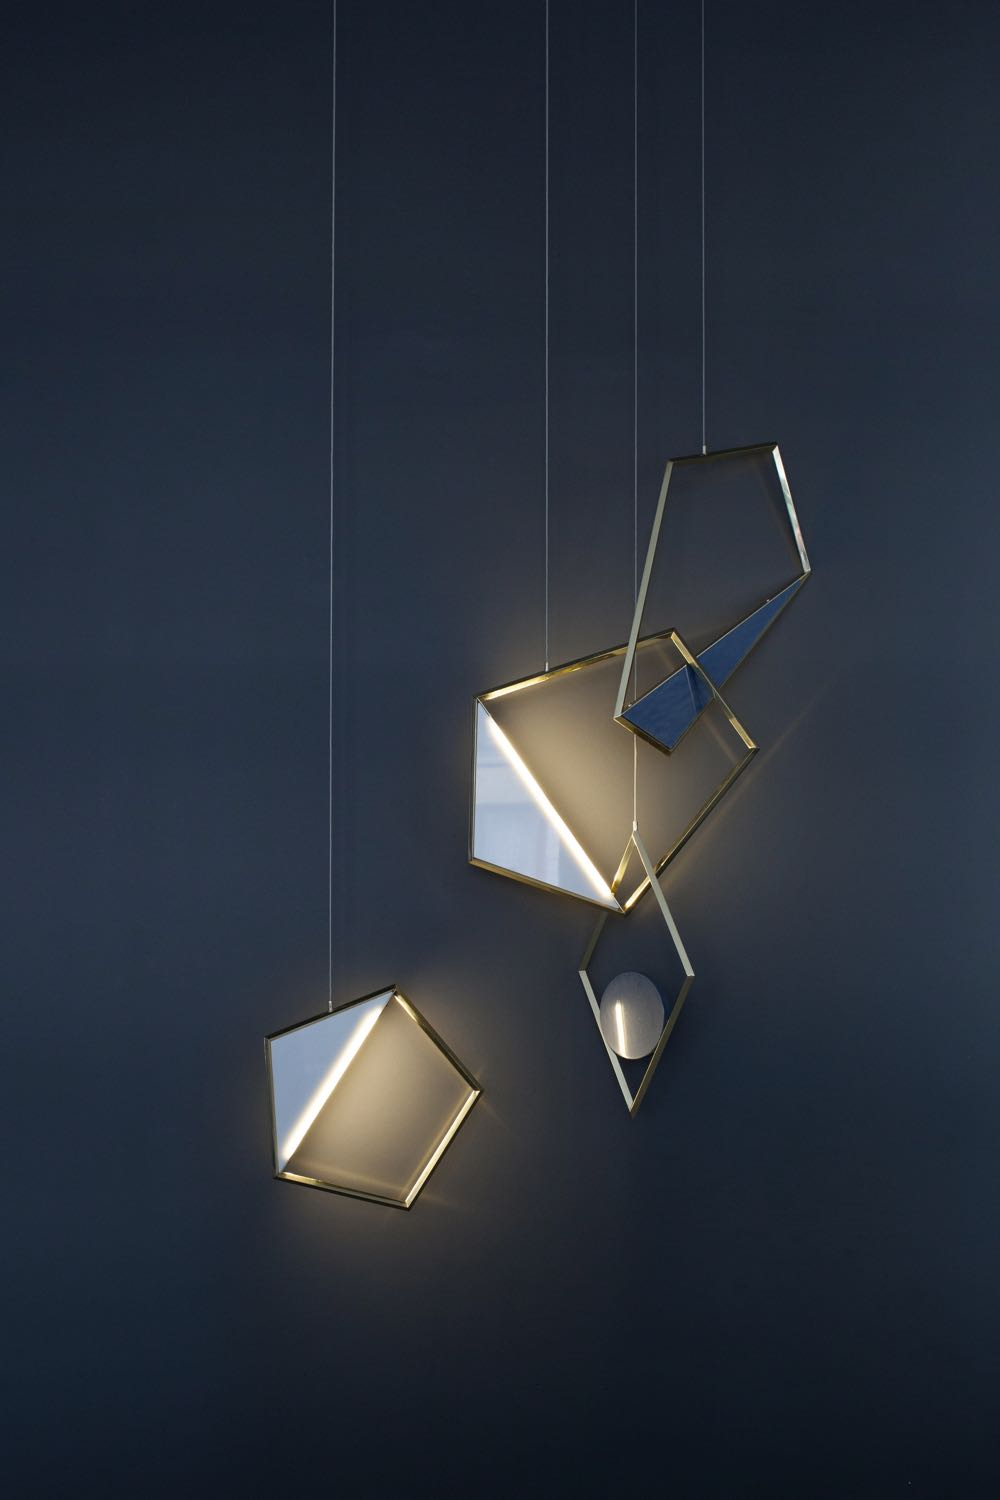 The 'Tangle' light by  COORDINATION  shown in Brera at  Berlin Design Selection.